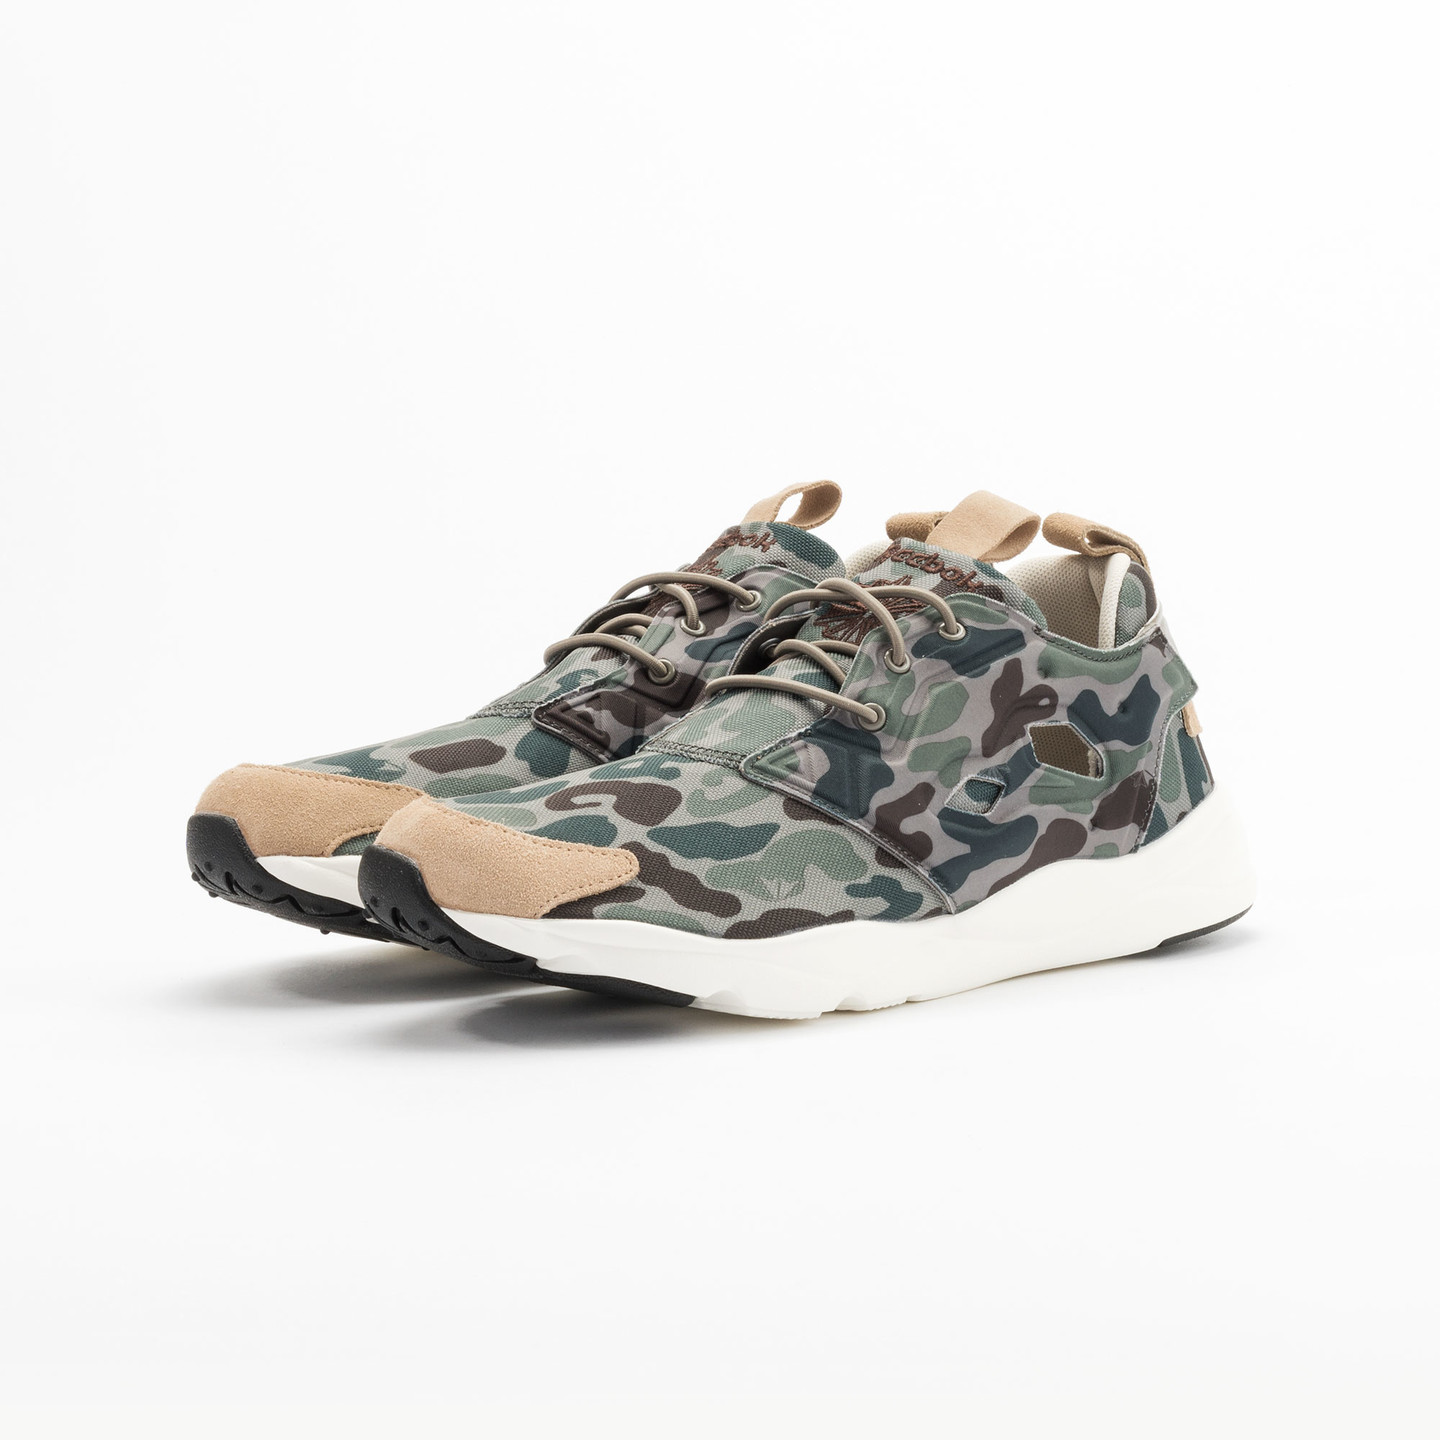 Reebok Furylite Camo Cement / Silvery Green / Sage V67089-44